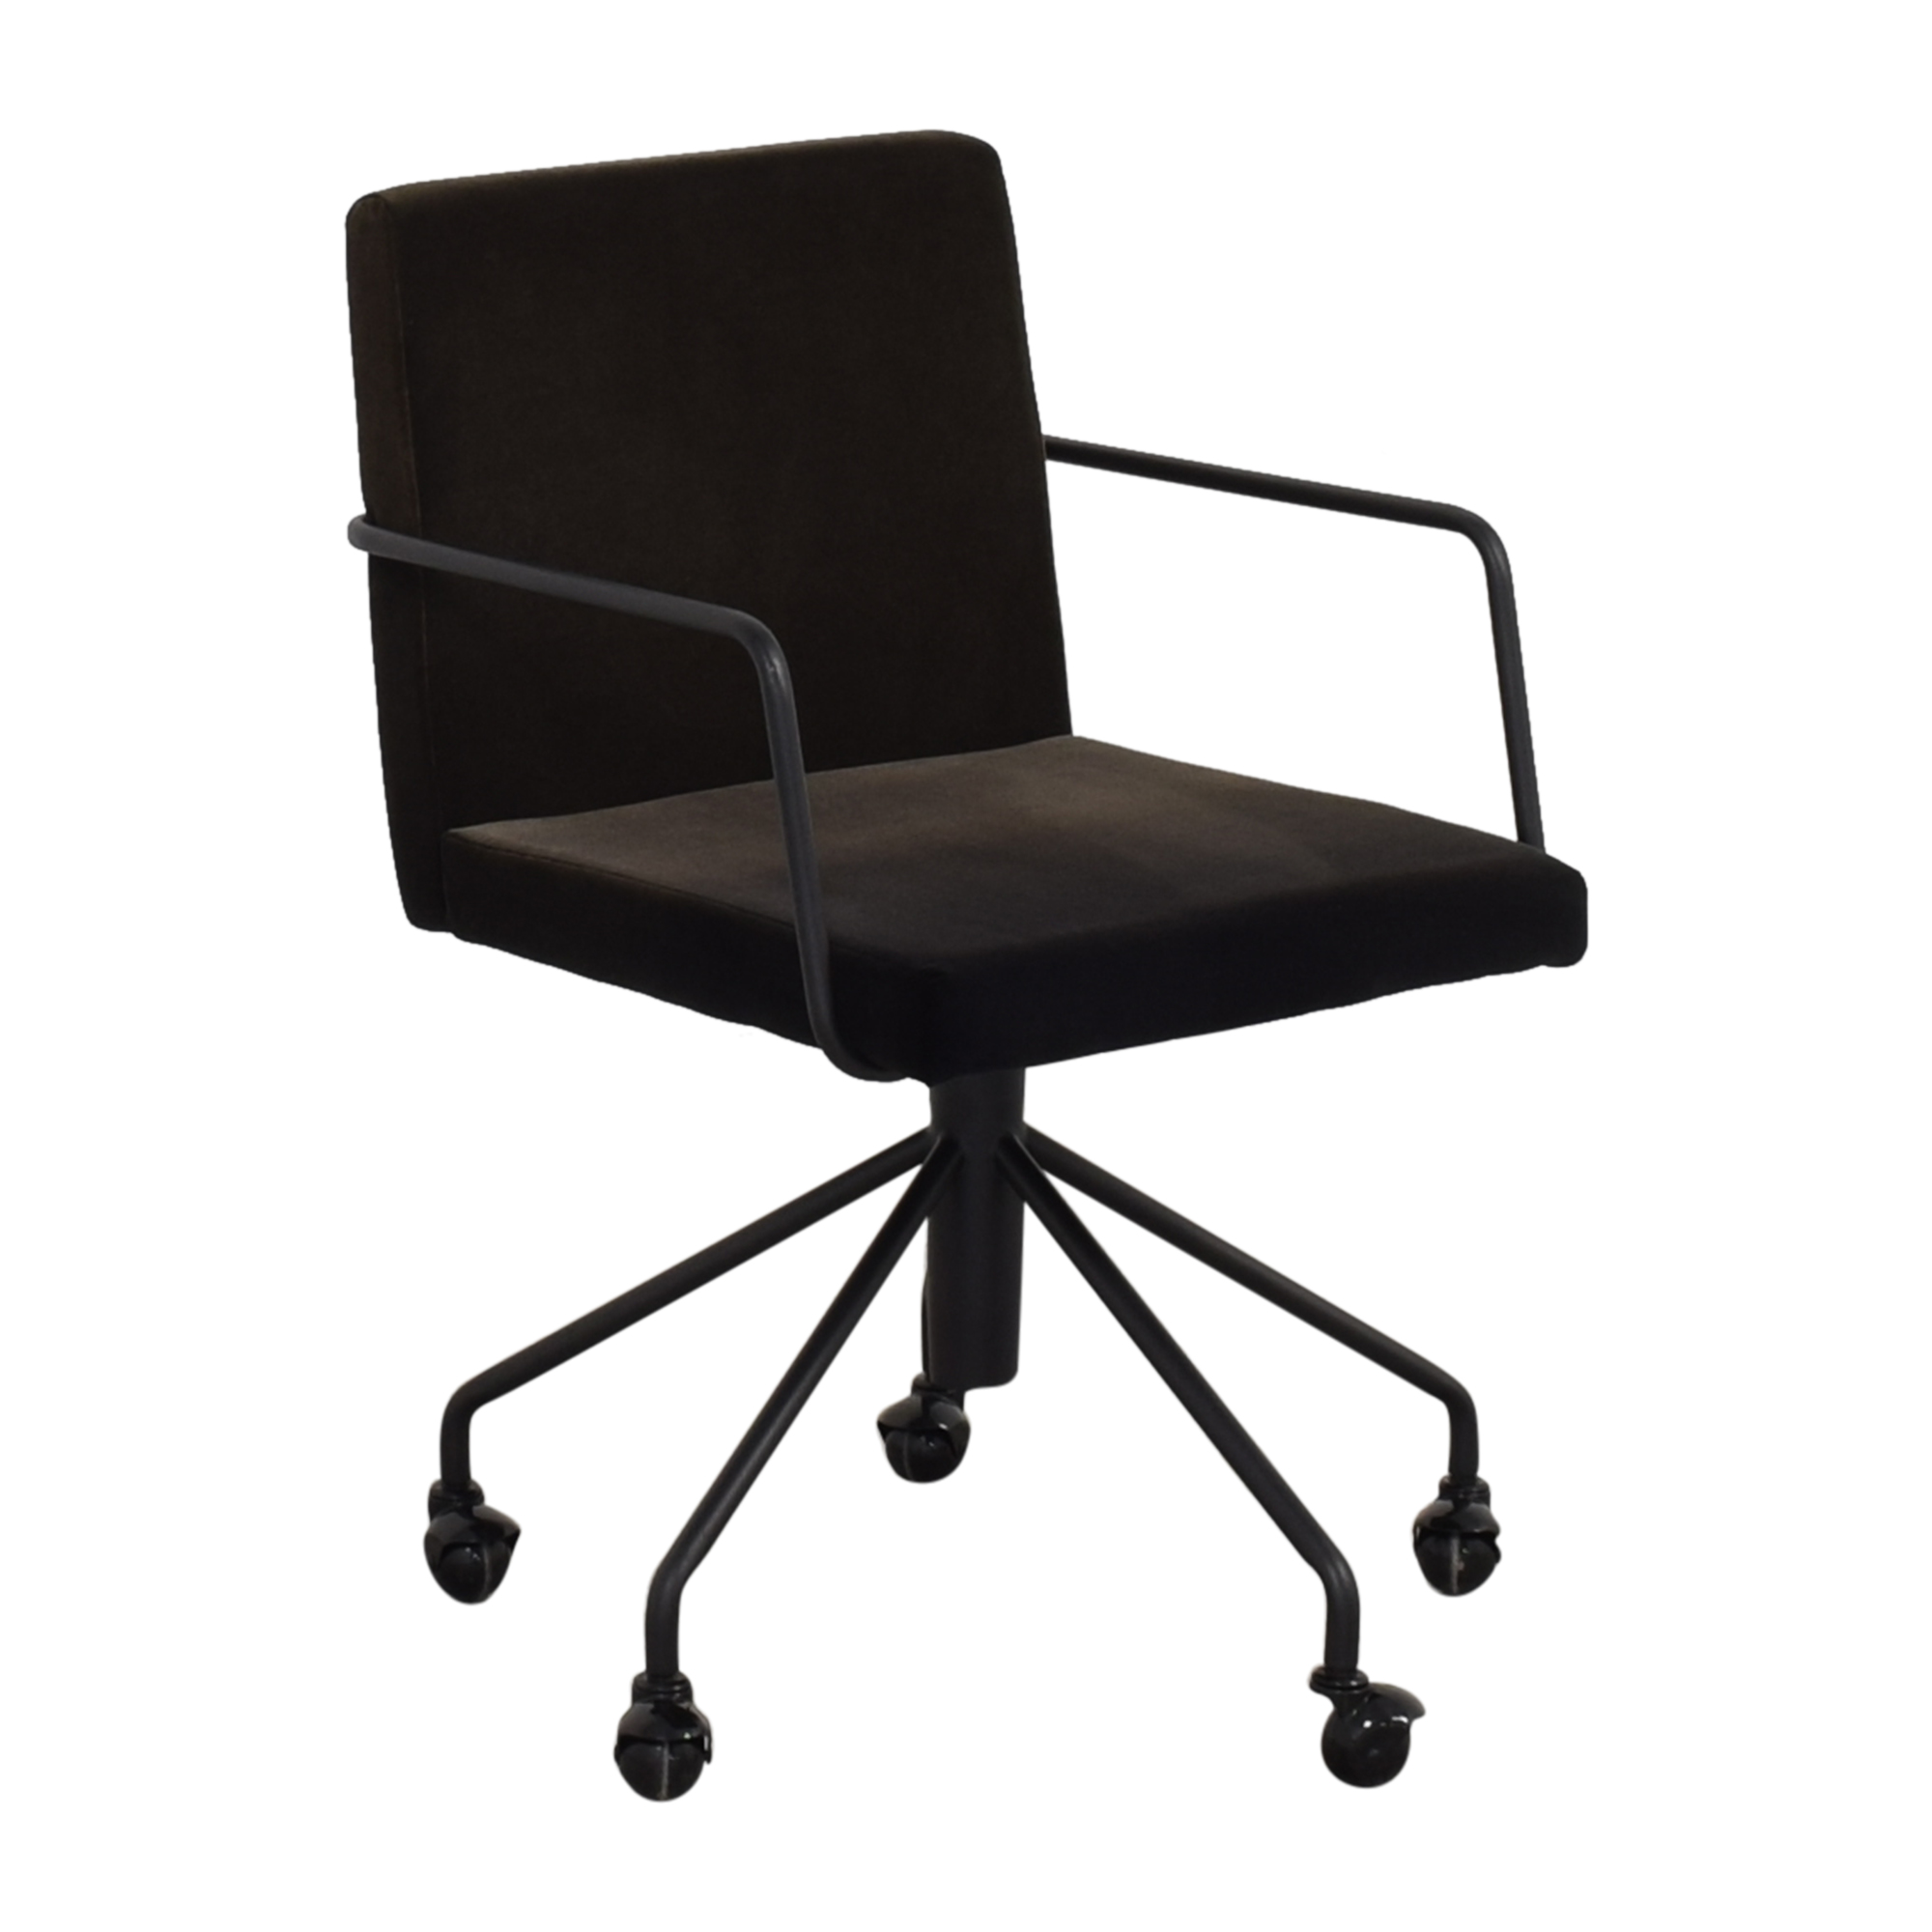 63 Off Cb2 Cb2 Rouka Home Office Chair Chairs